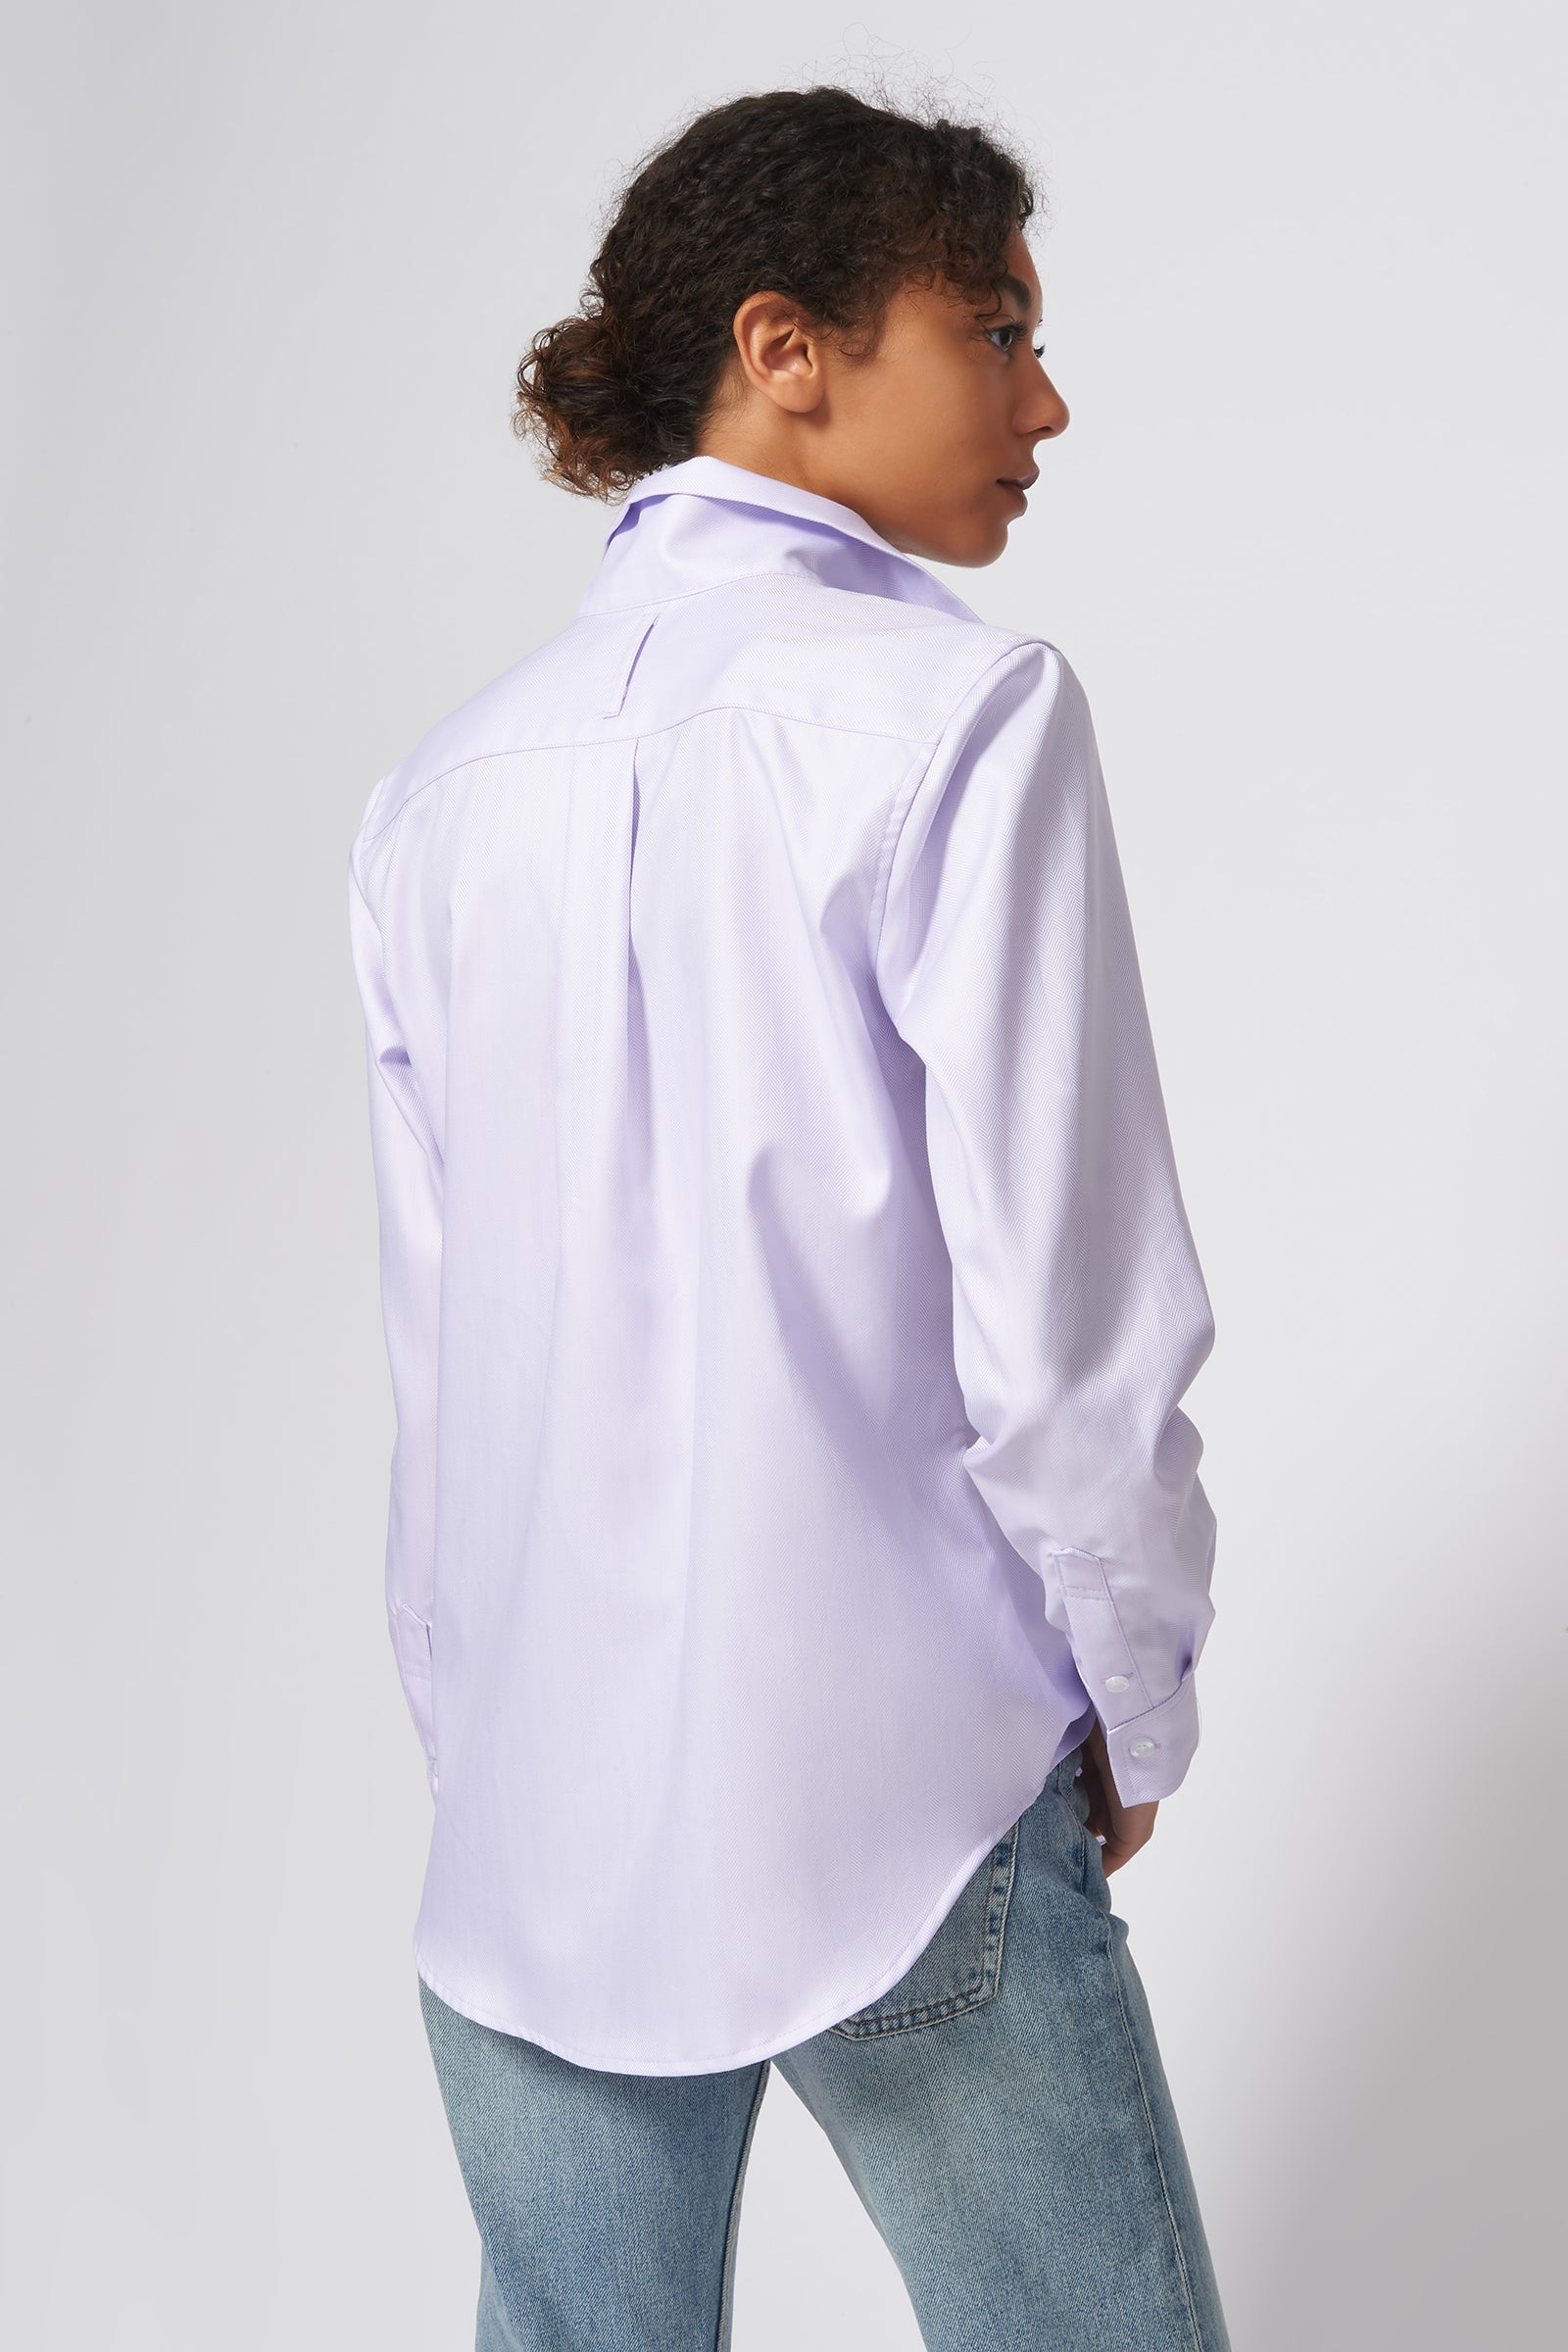 Kal Rieman Ginna Box Pleat Shirt in Lavendar Fine Herringbone on Model Full Front View